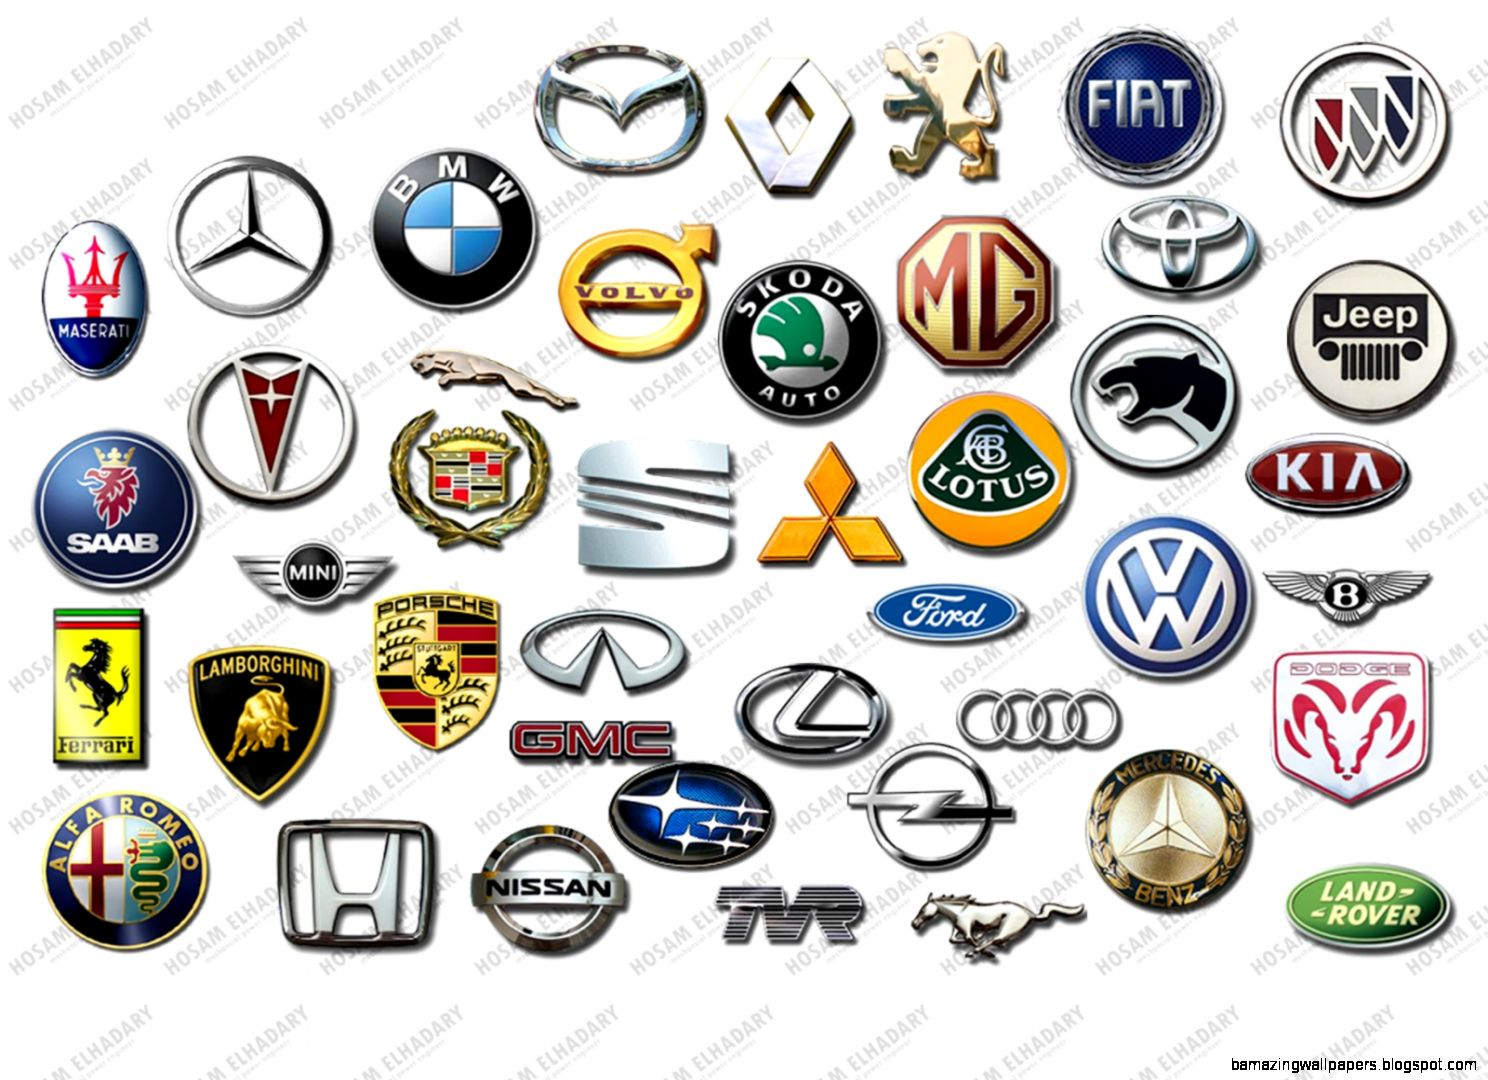 Car Brands That Start With D >> Luxury Car Brands Starting With D Why Luxury Car Brands